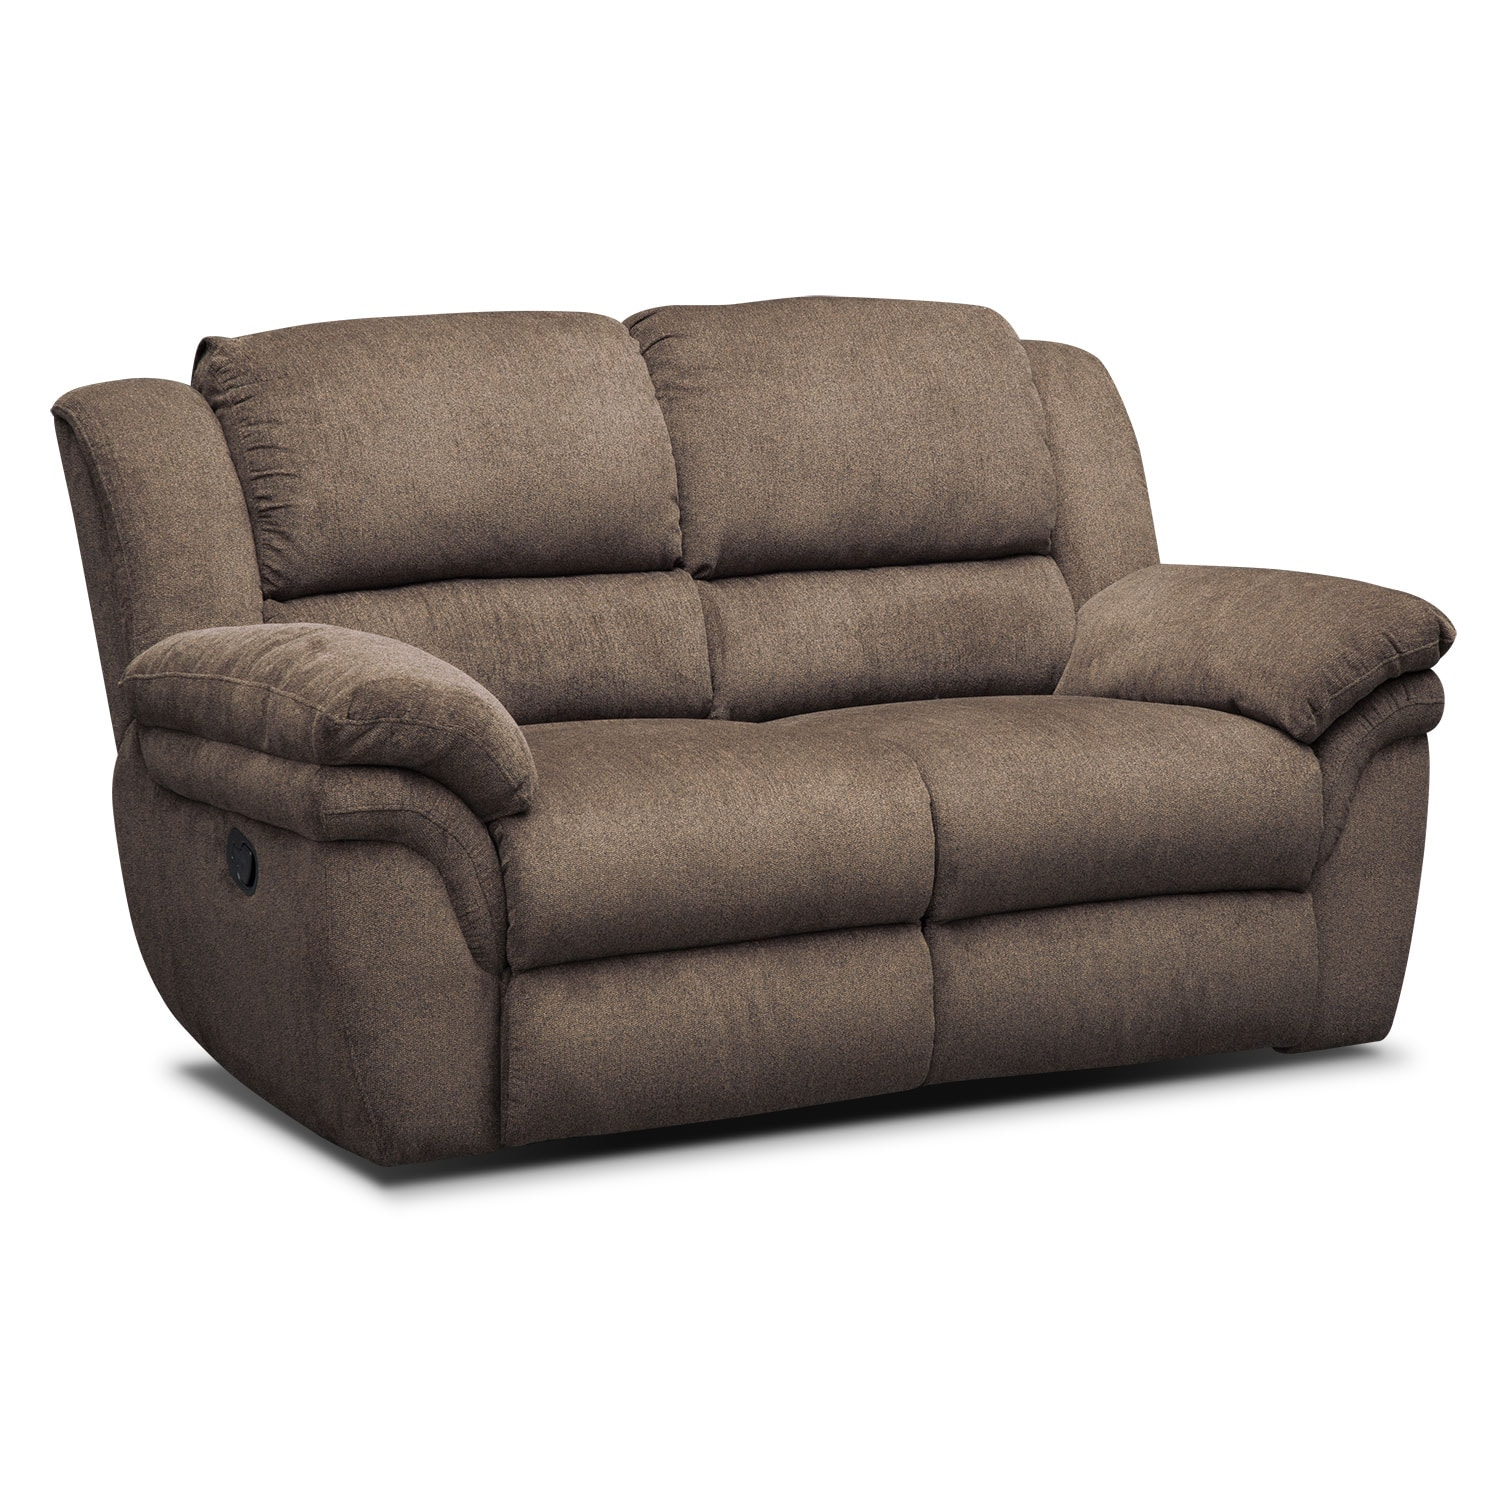 Aldo manual dual reclining sofa loveseat and recliner set mocha american signature furniture Reclining loveseat sale